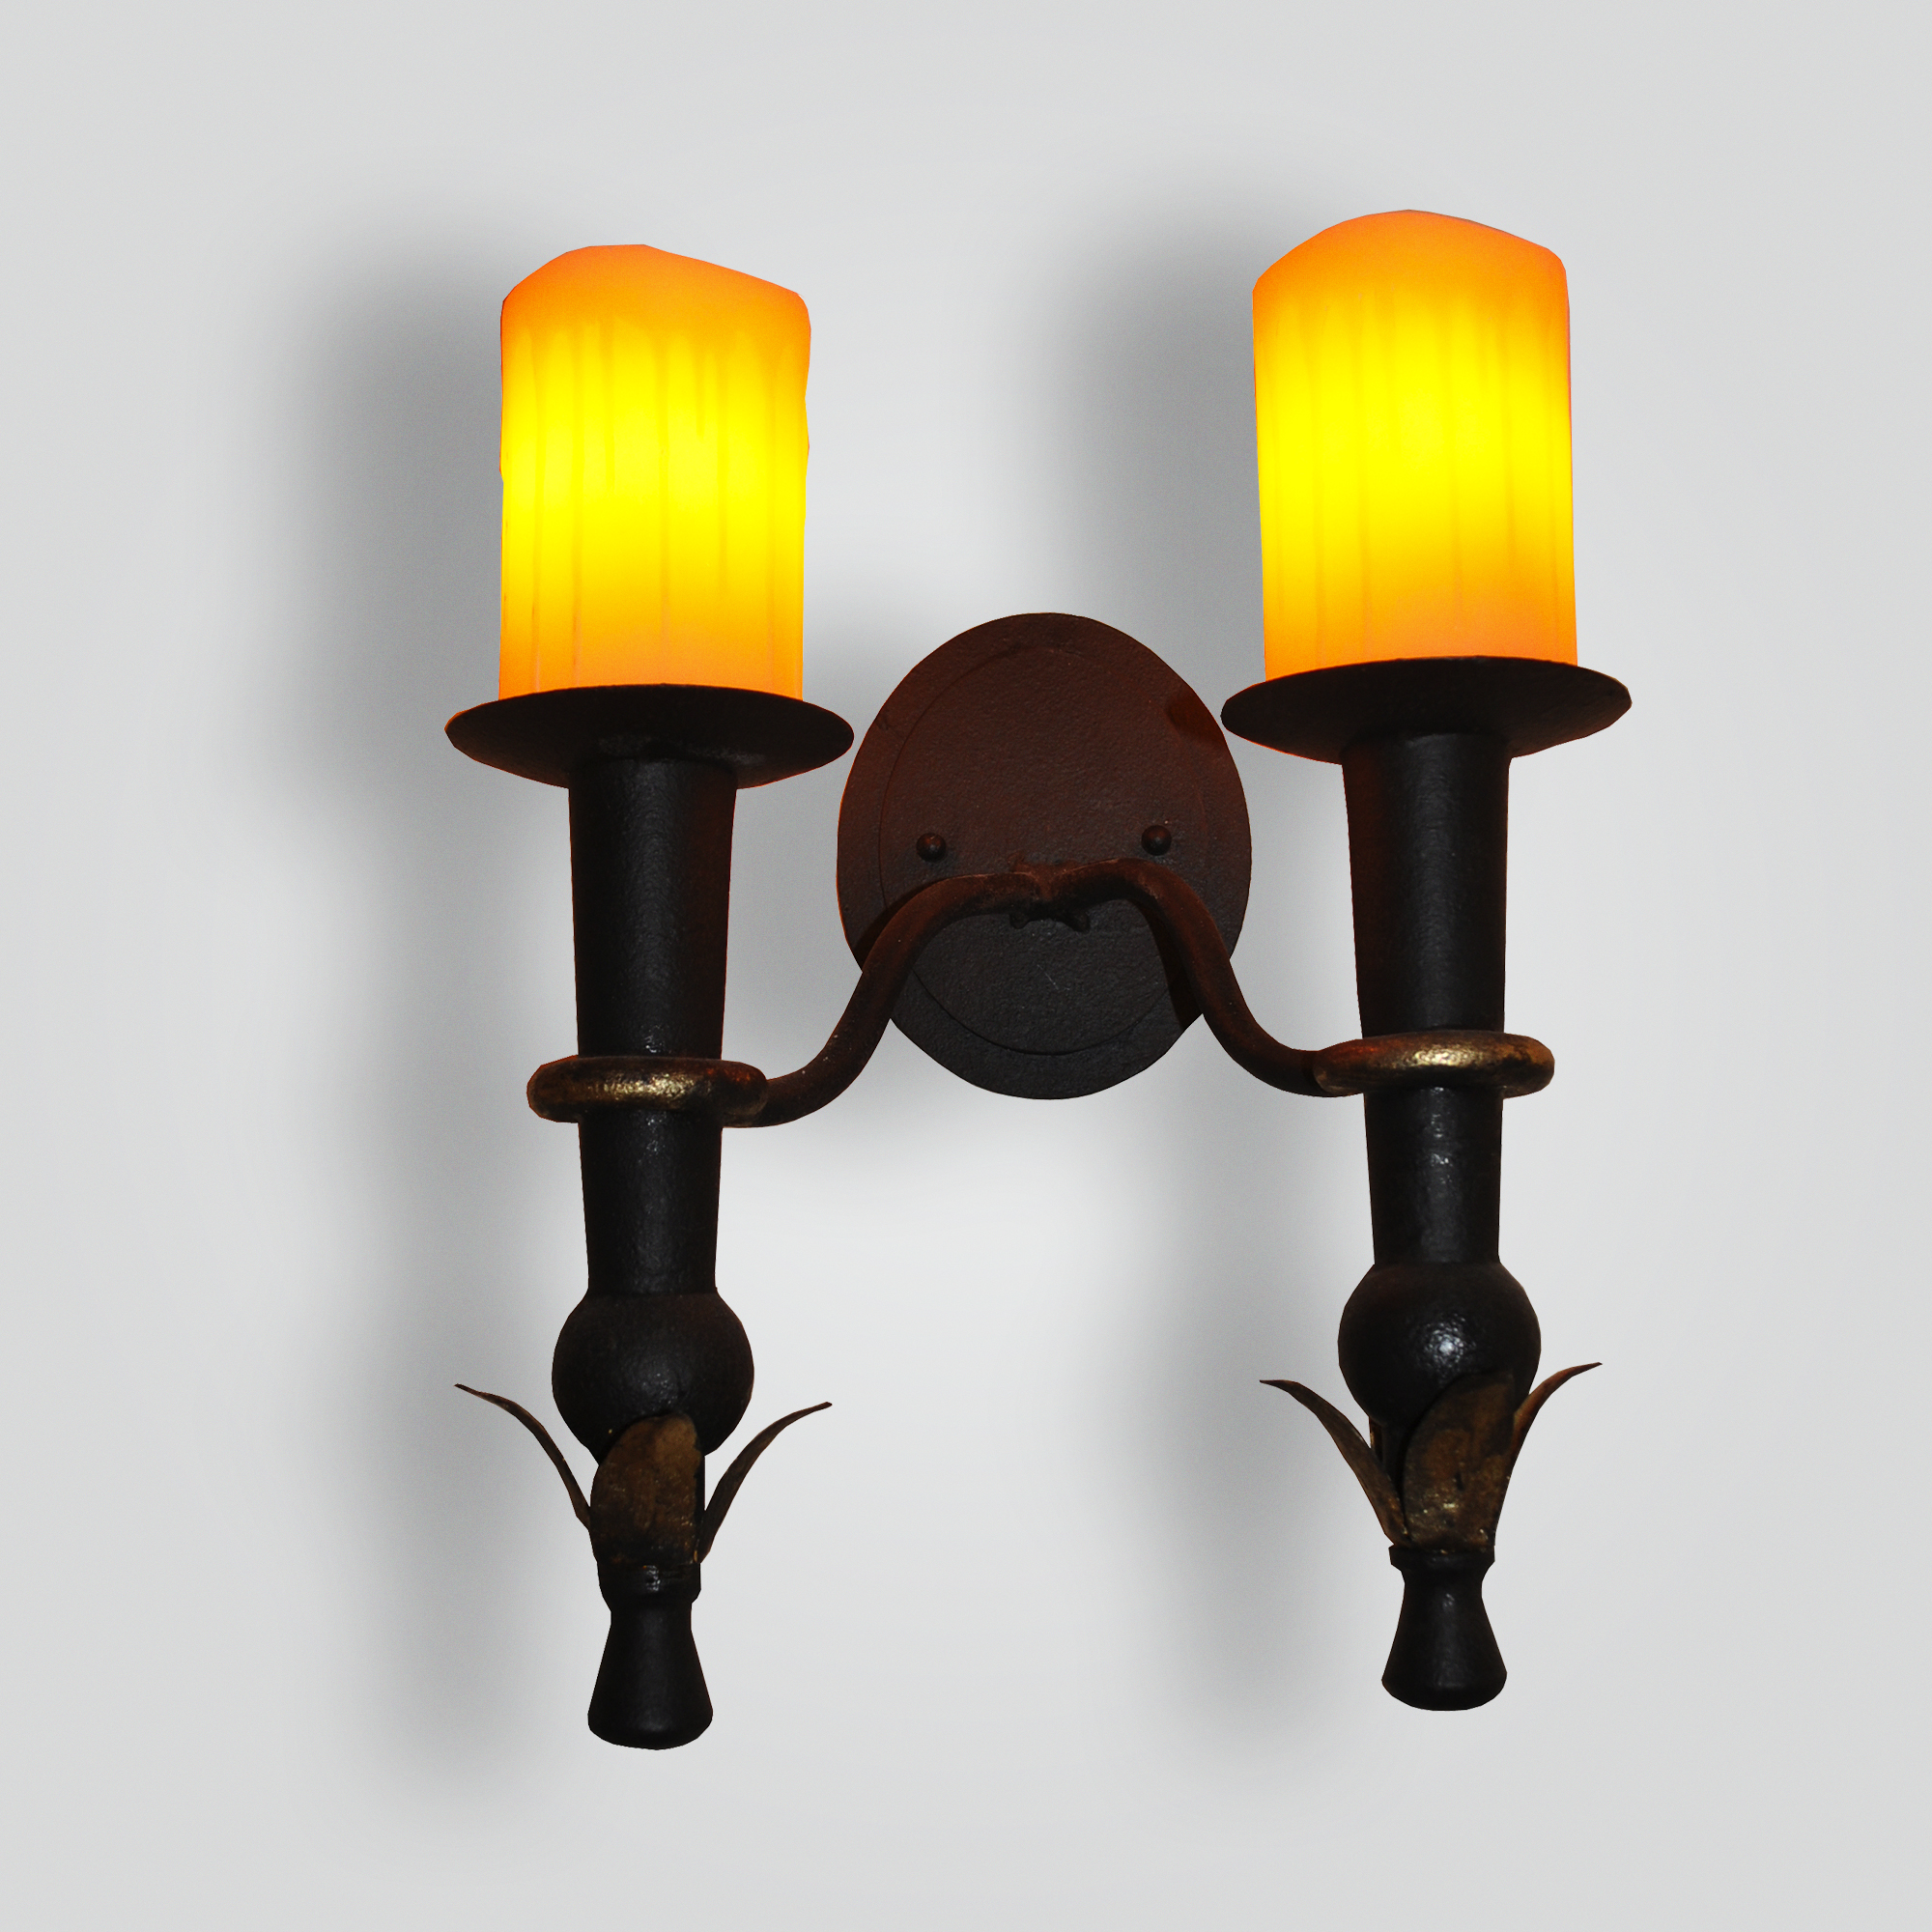 5044-cb2-ir-w-ba-rose-double-torch-sconce – ADG Lighting Collection